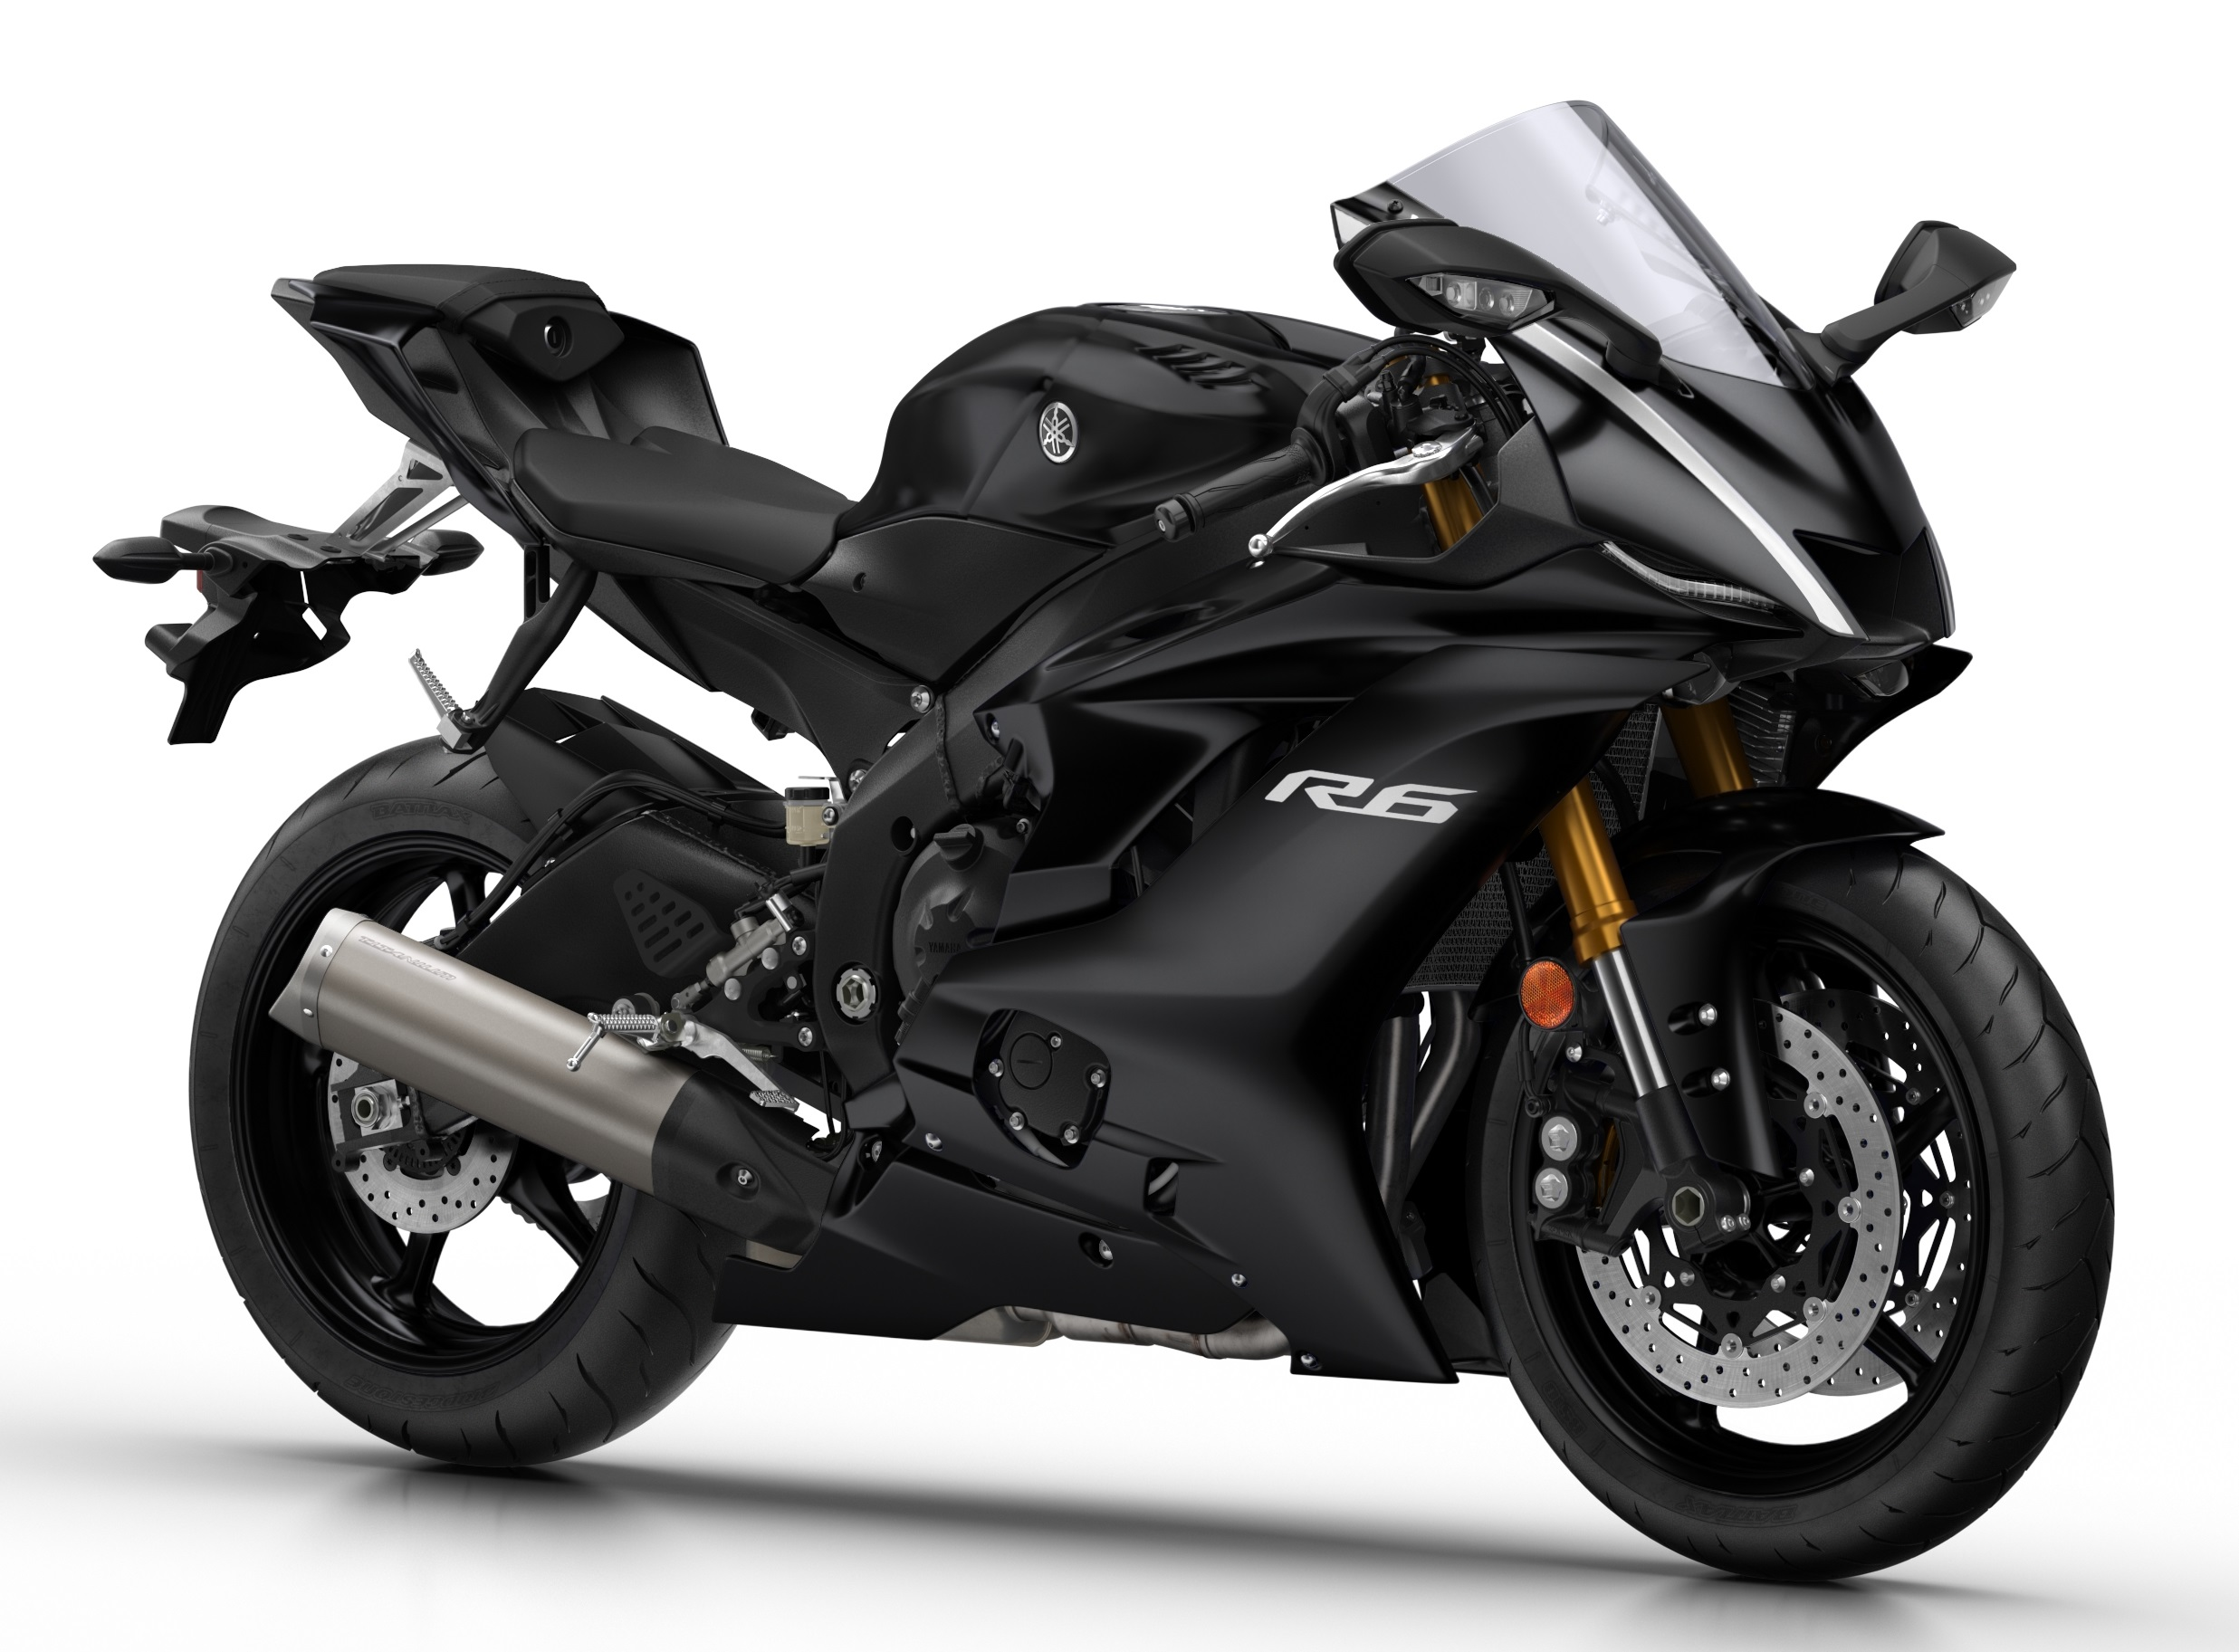 Yamaha YZF R6 O For Sale Price Guide The Bike Market